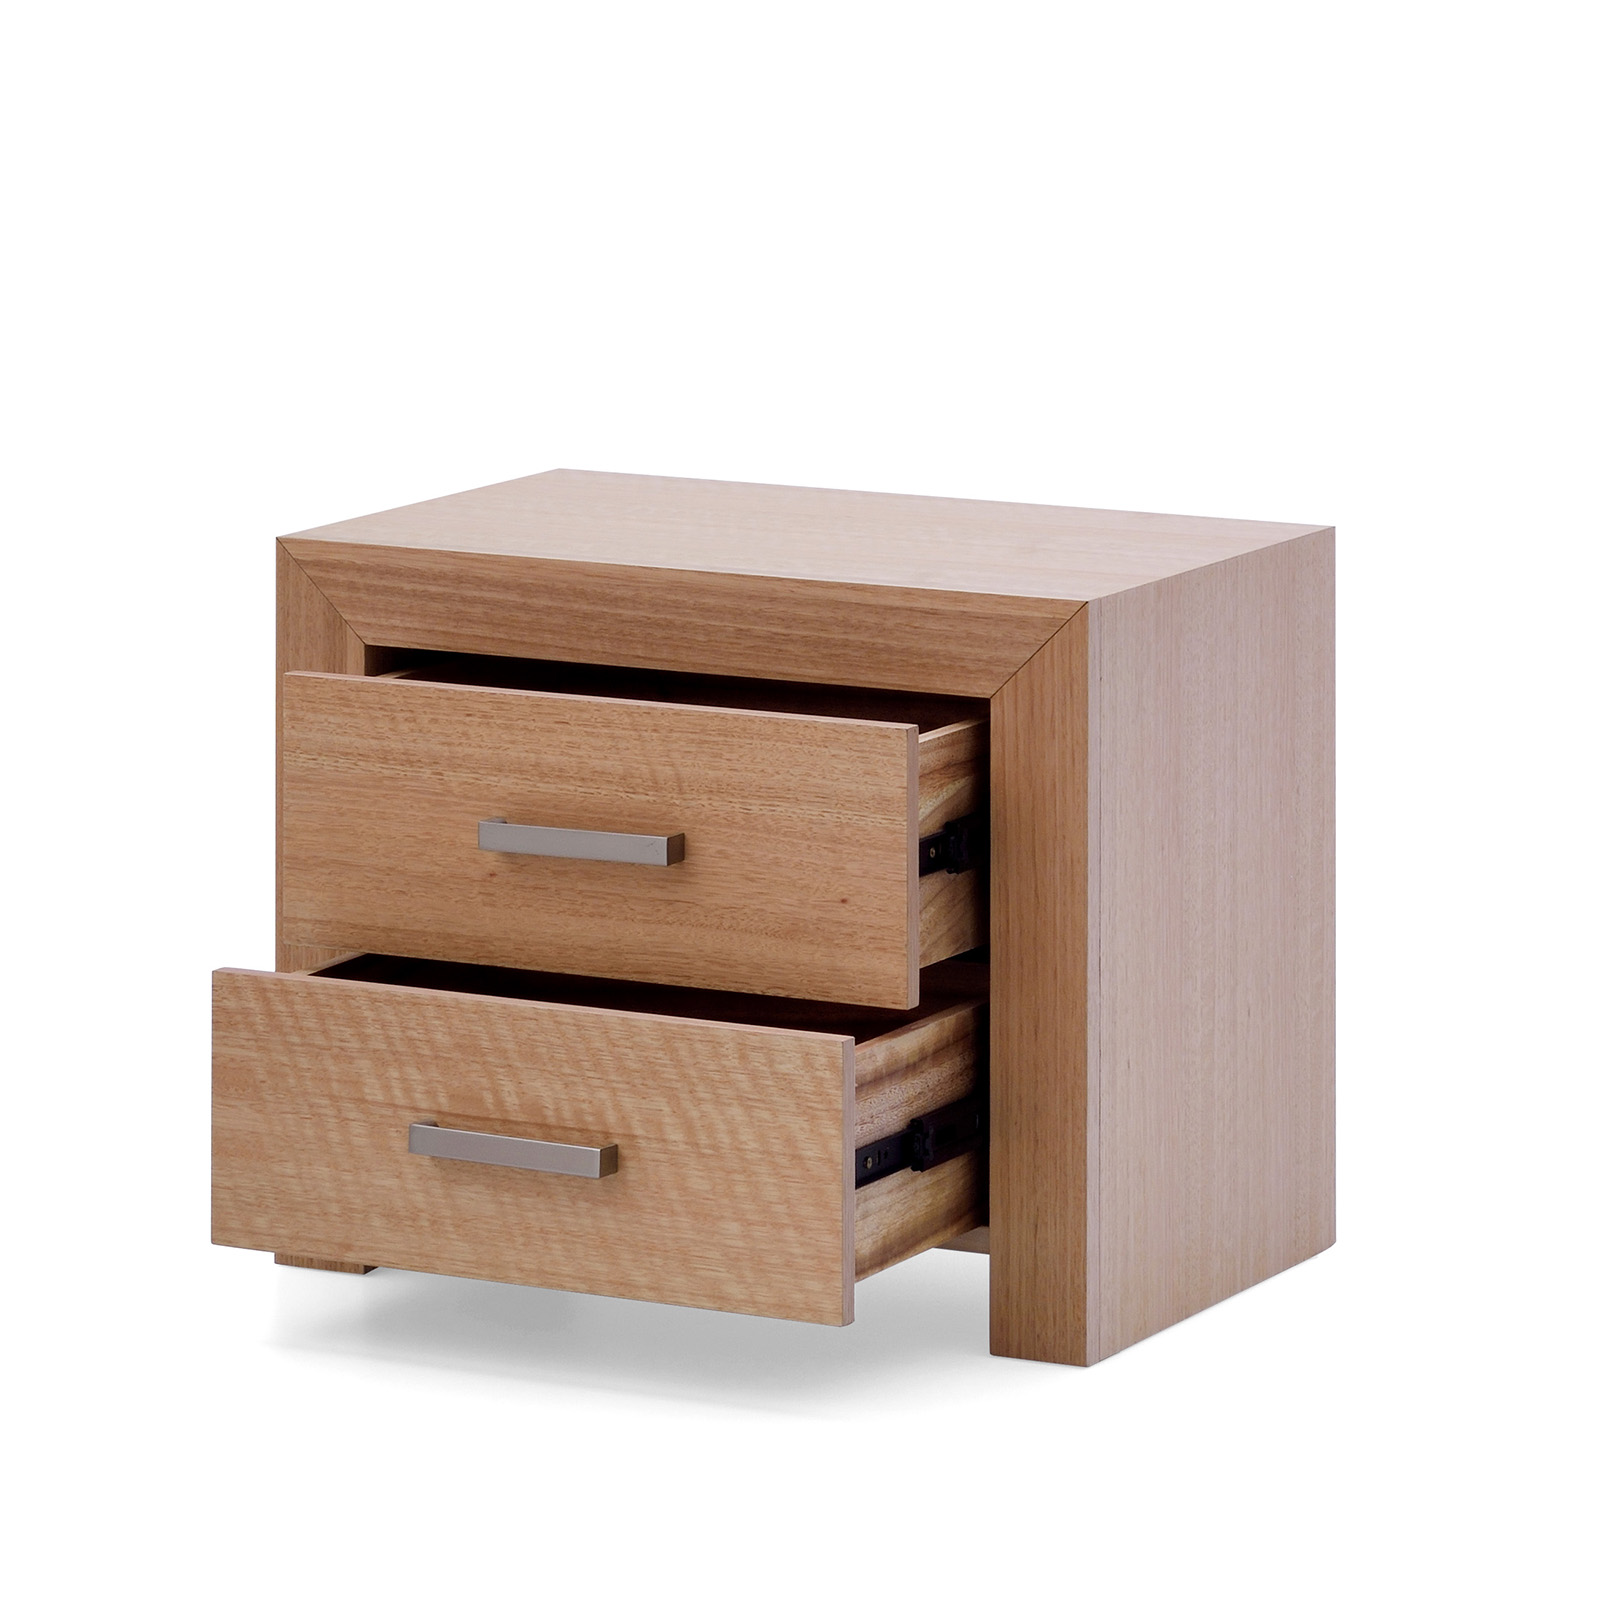 Madison Tasmanian Oak Veneer Bedside Table 2 Storage  : 10 28032 from www.ebay.com.au size 1600 x 1600 jpeg 269kB